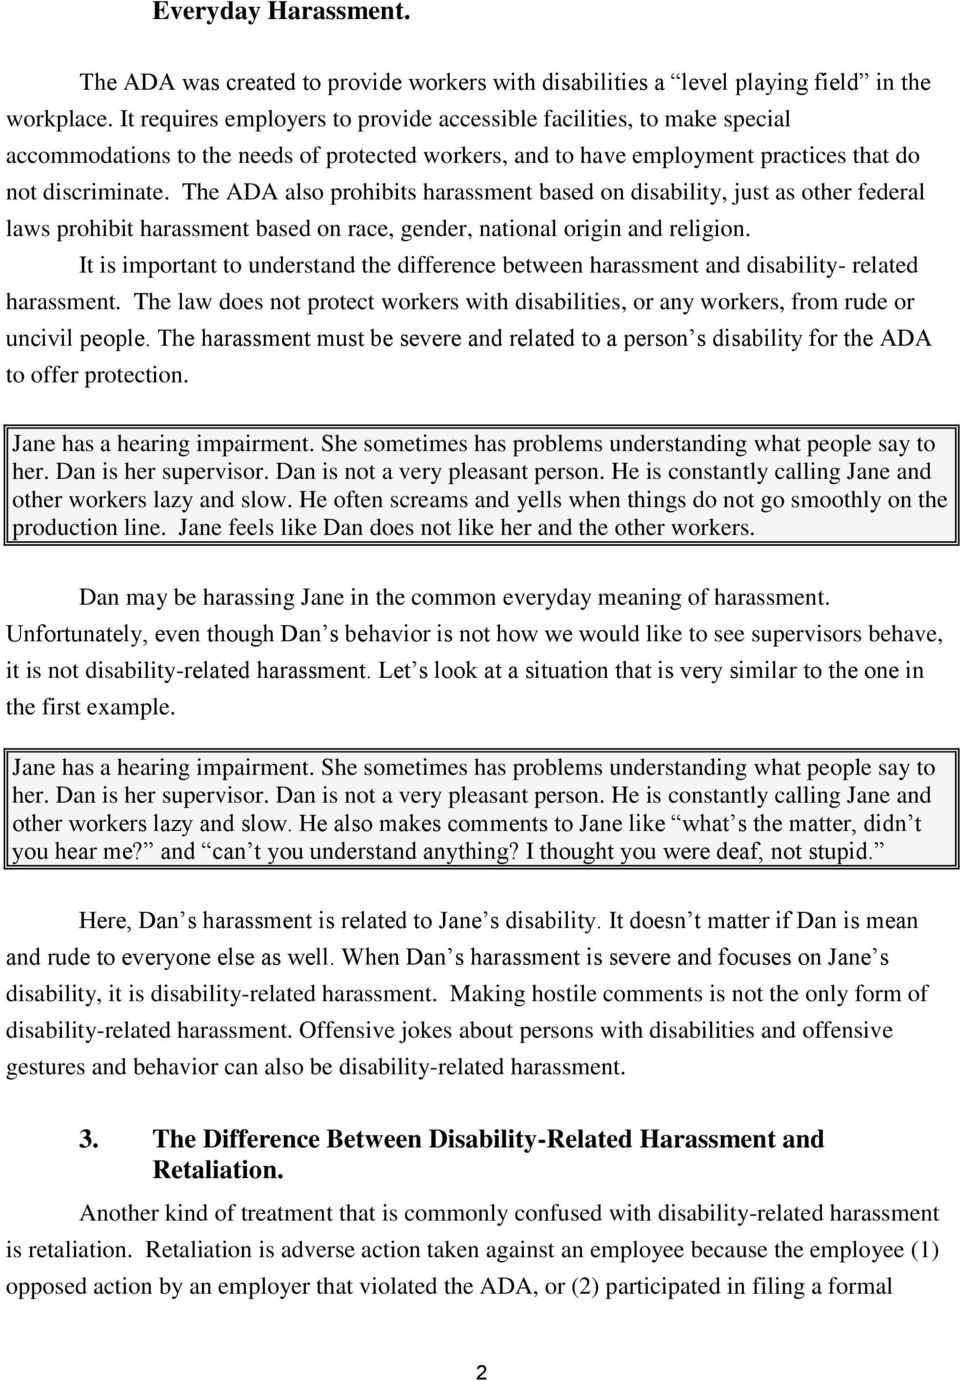 The ADA also prohibits harassment based on disability, just as other federal laws prohibit harassment based on race, gender, national origin and religion.